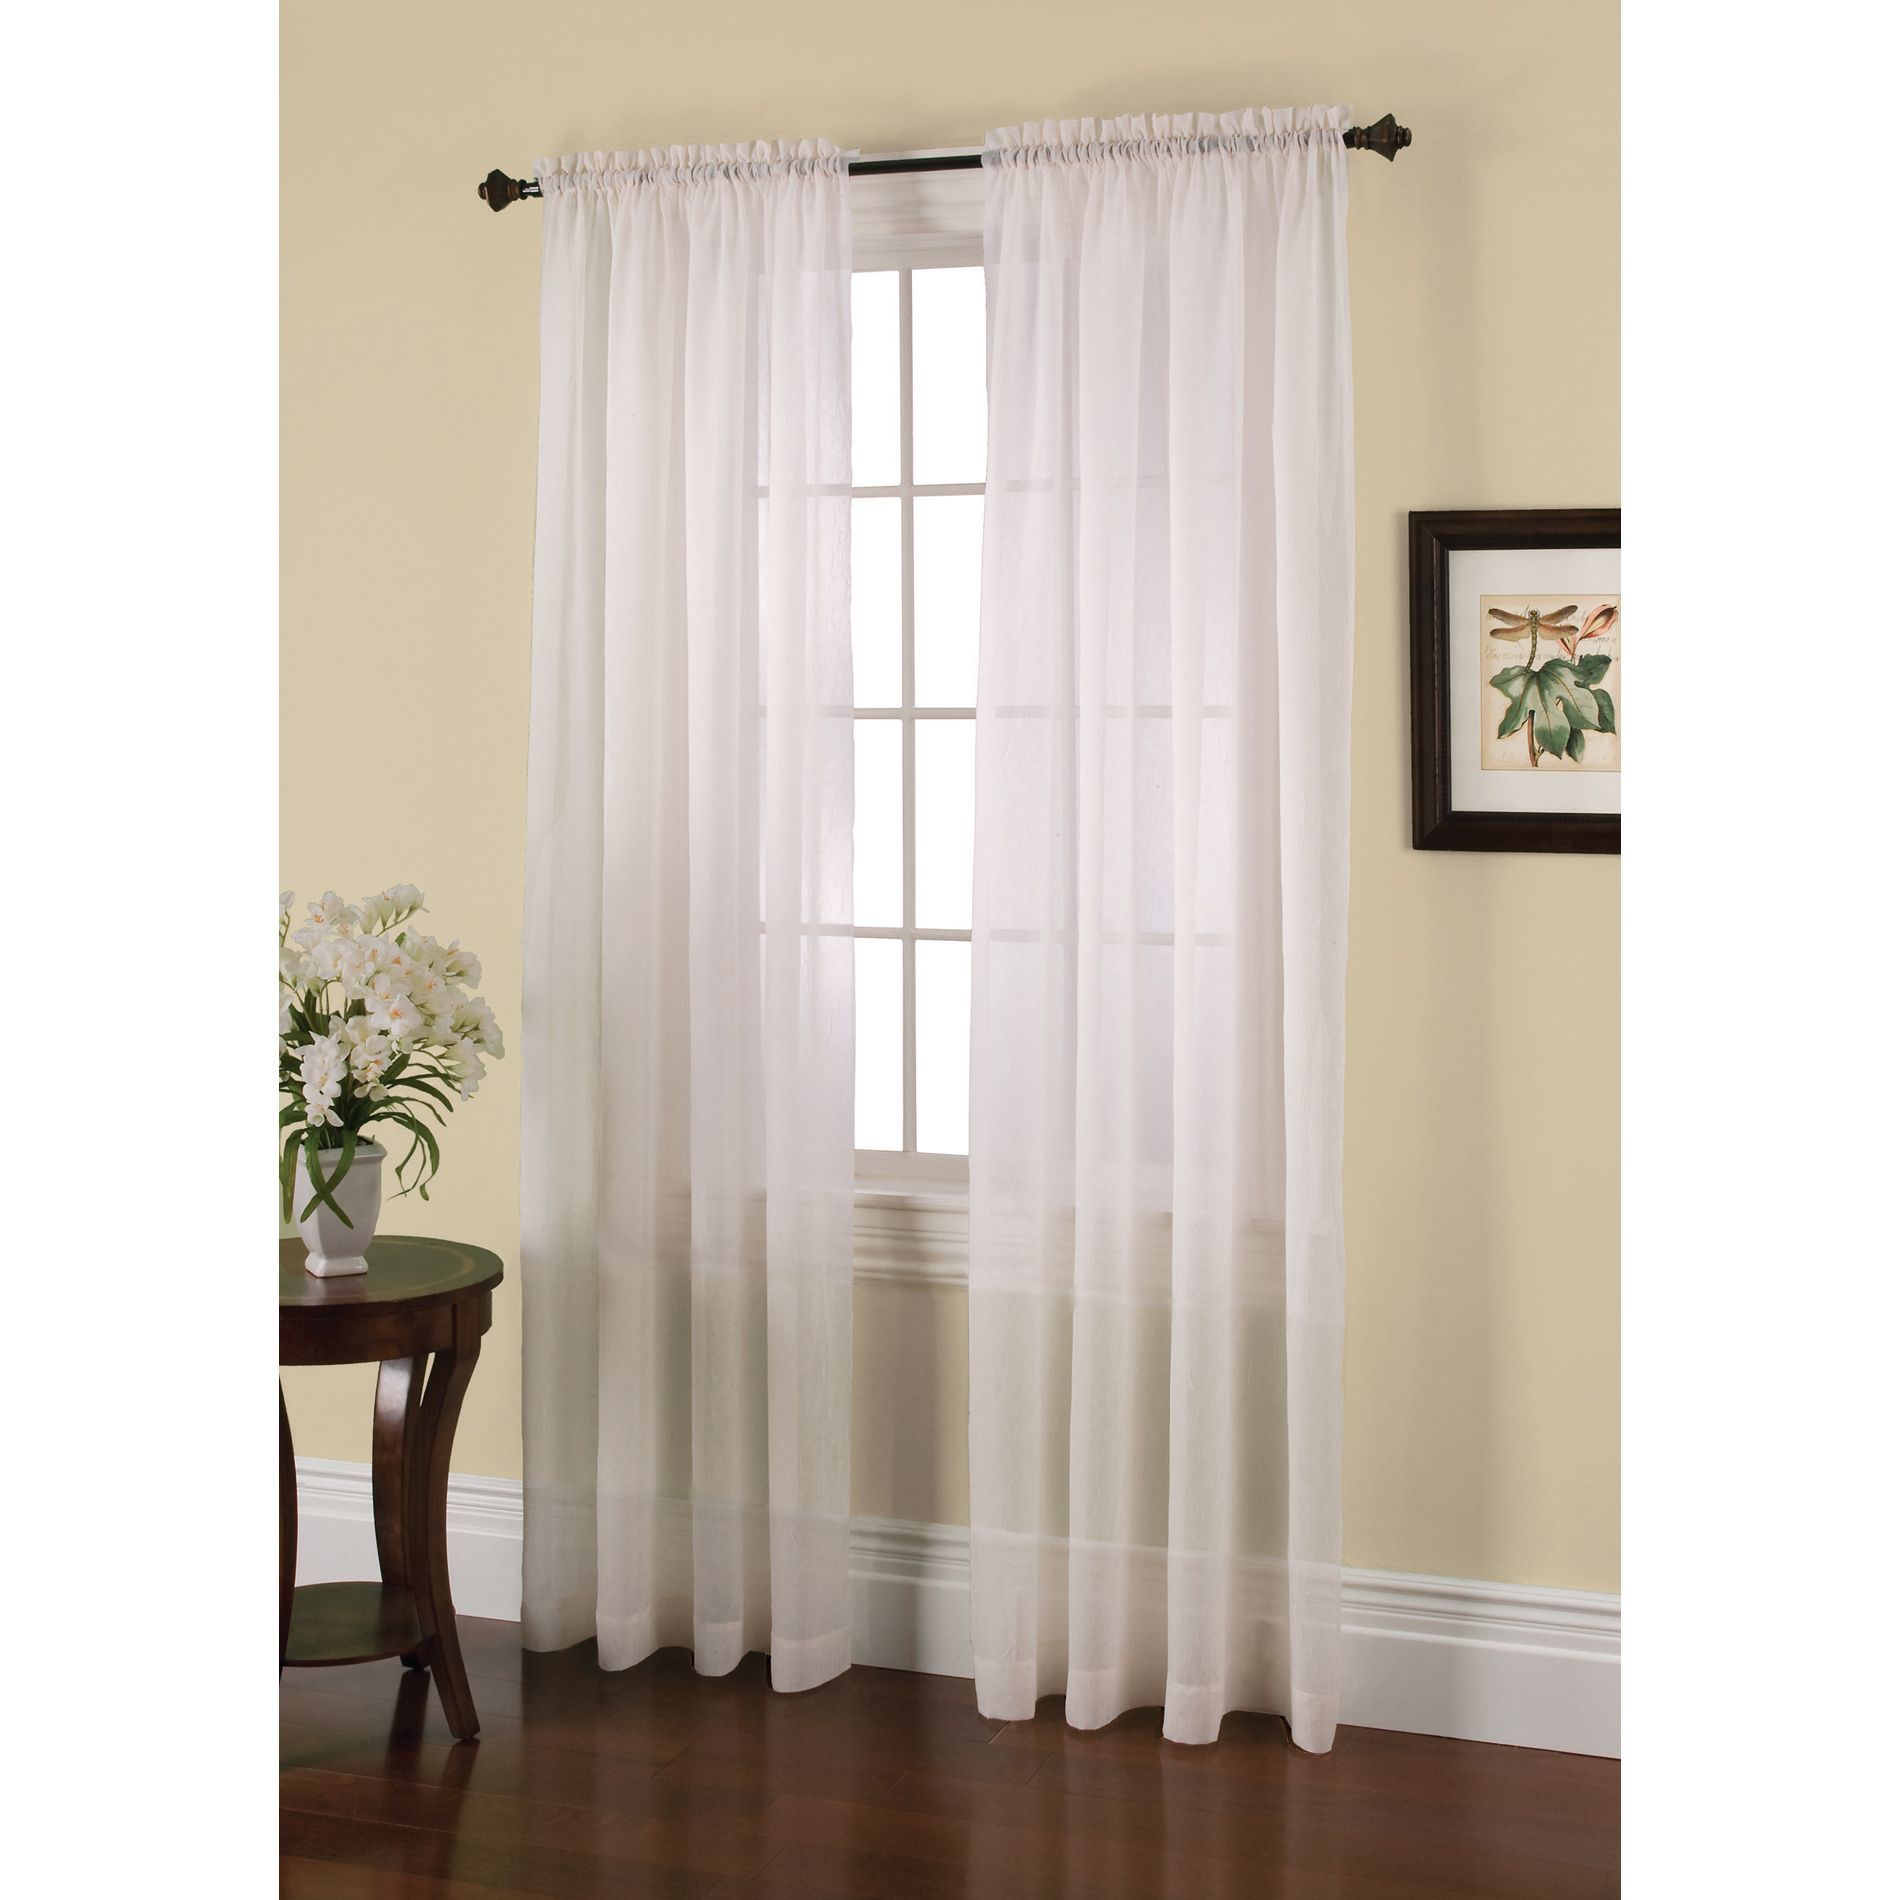 Points to keep in mind when buying   crushed voile sheer curtains